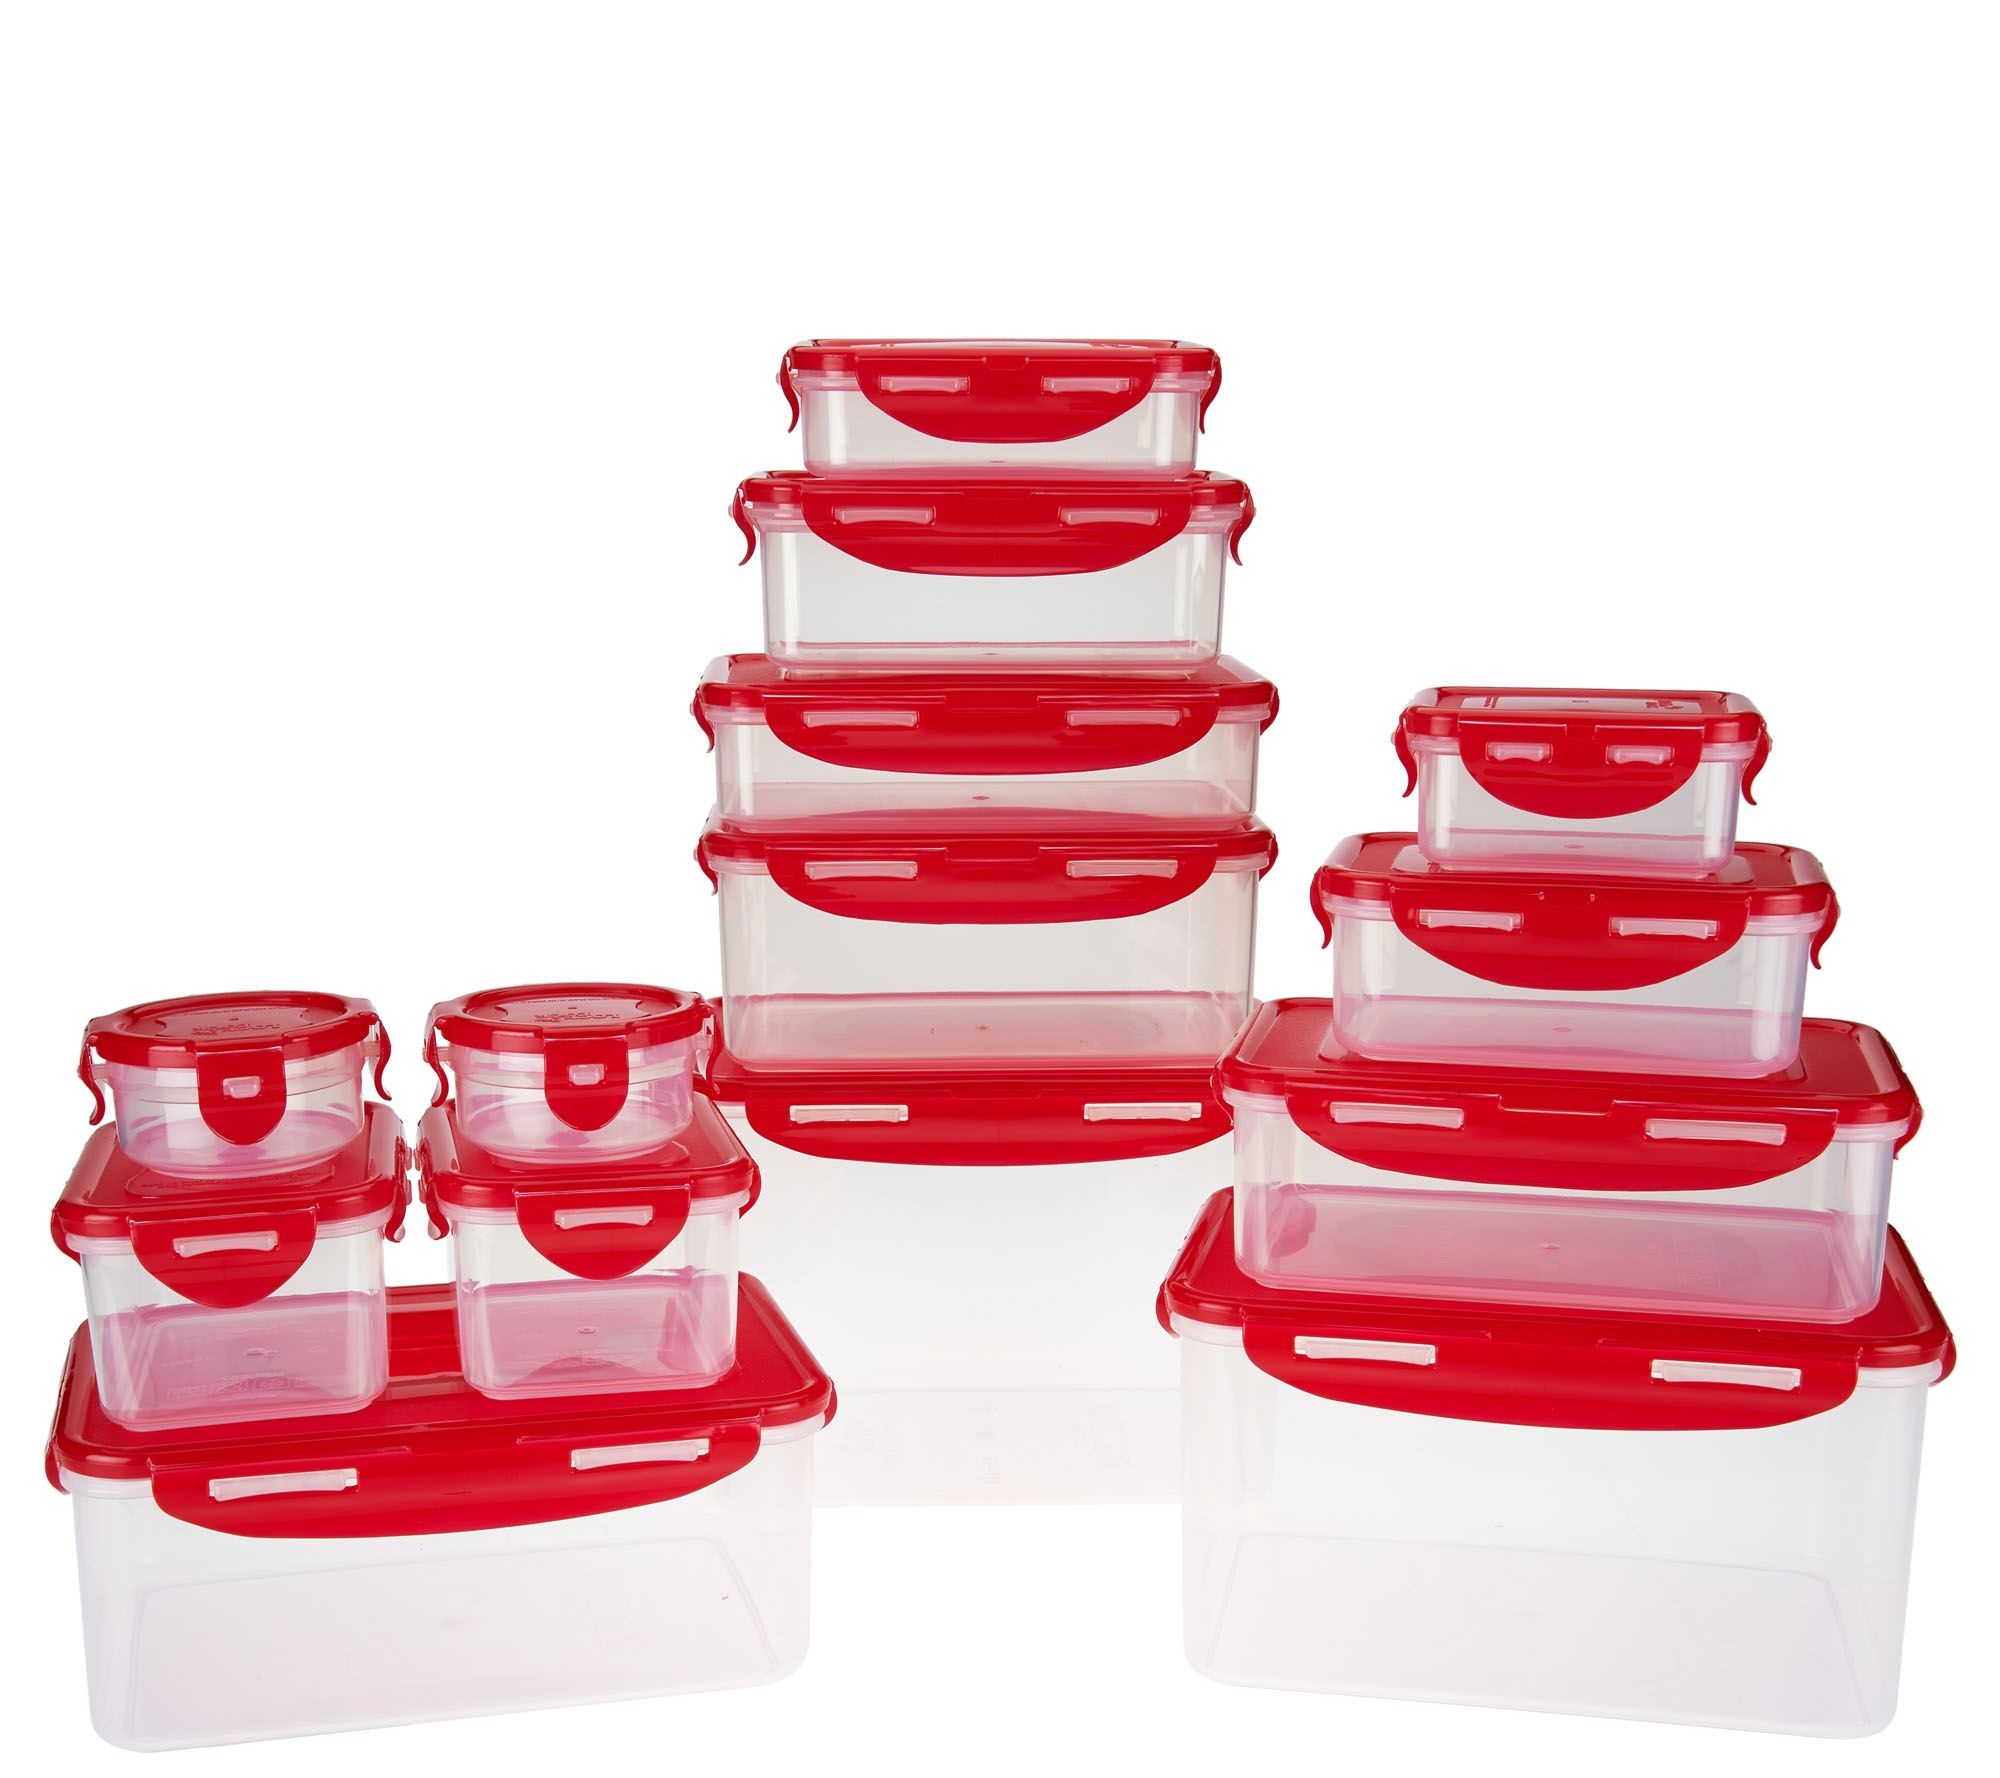 Lock U0026 Lock 14pc Nestable Storage Set W/ 3 Handled Lids   Page 1 U2014 QVC.com